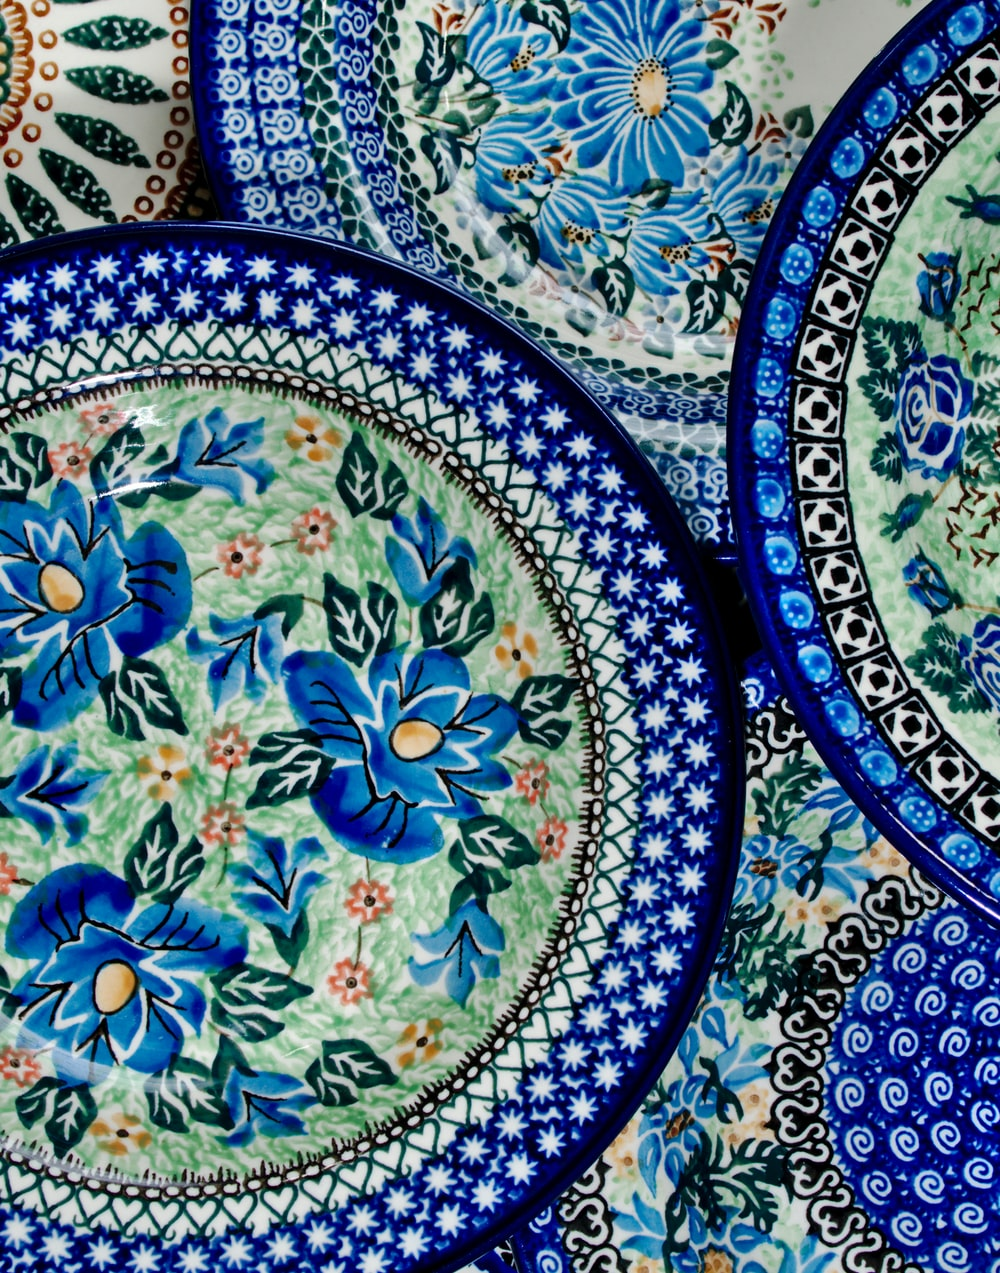 blue green and white floral ceramic plate